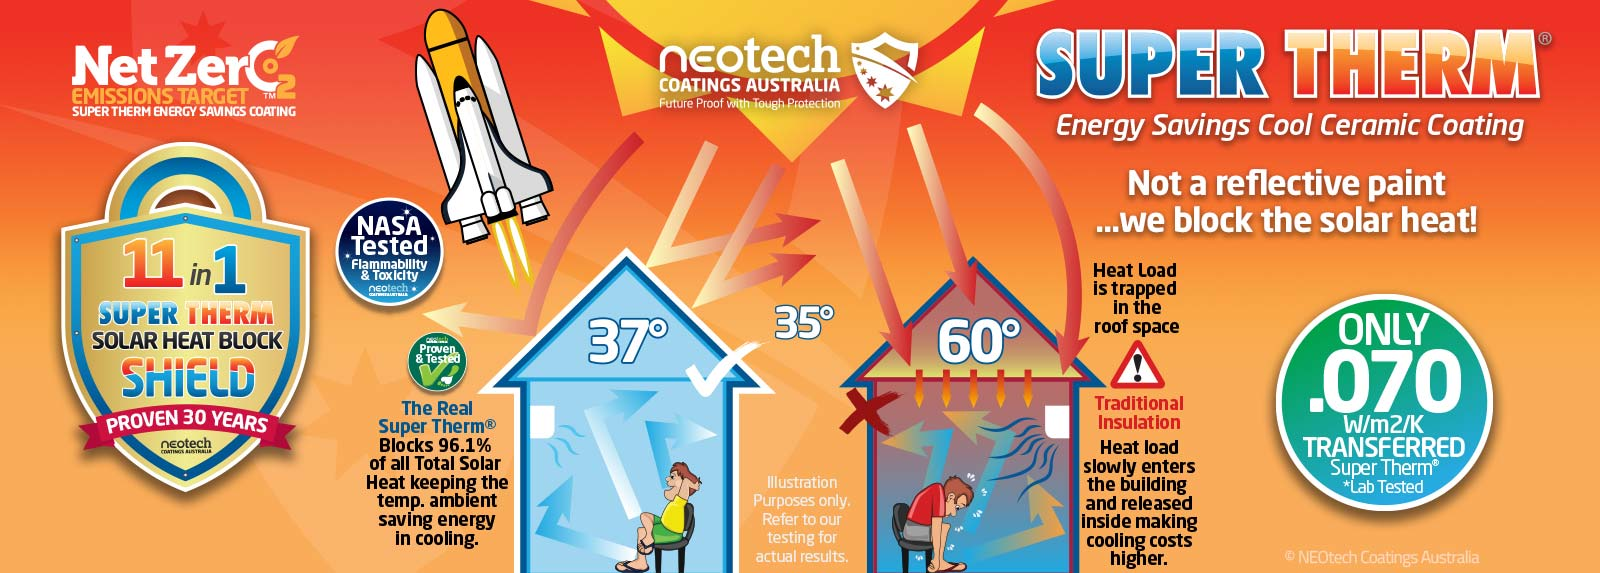 Super Therm® Insulation Coating ©NEOtech Illustration